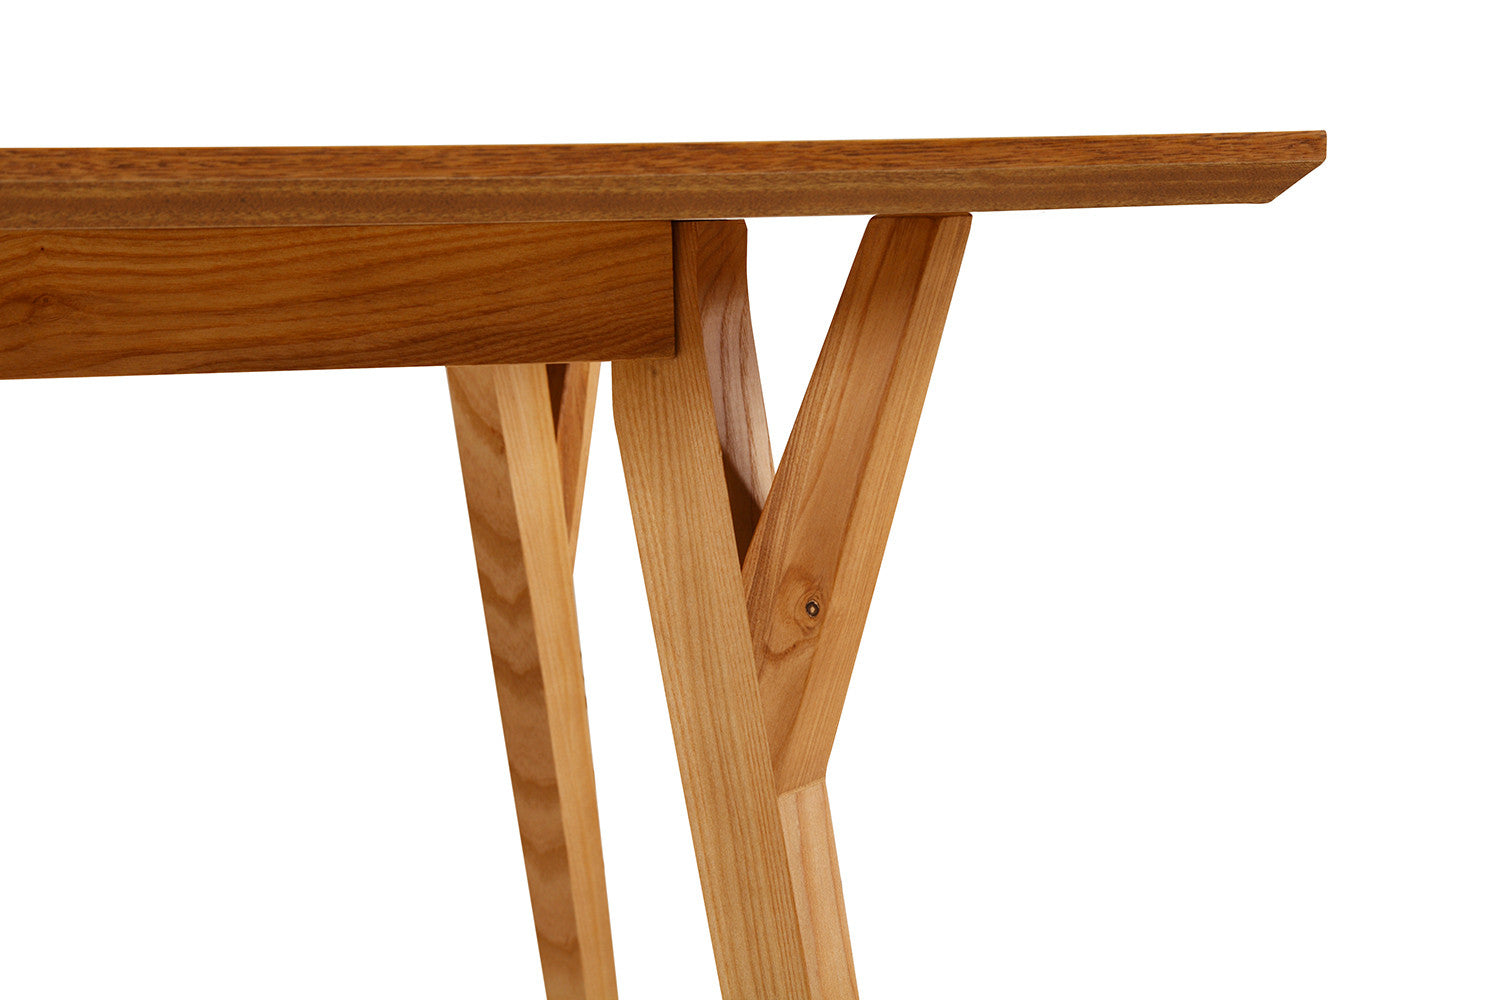 Table de salle manger scandinave en bois linth dewarens for Table scandinave bois